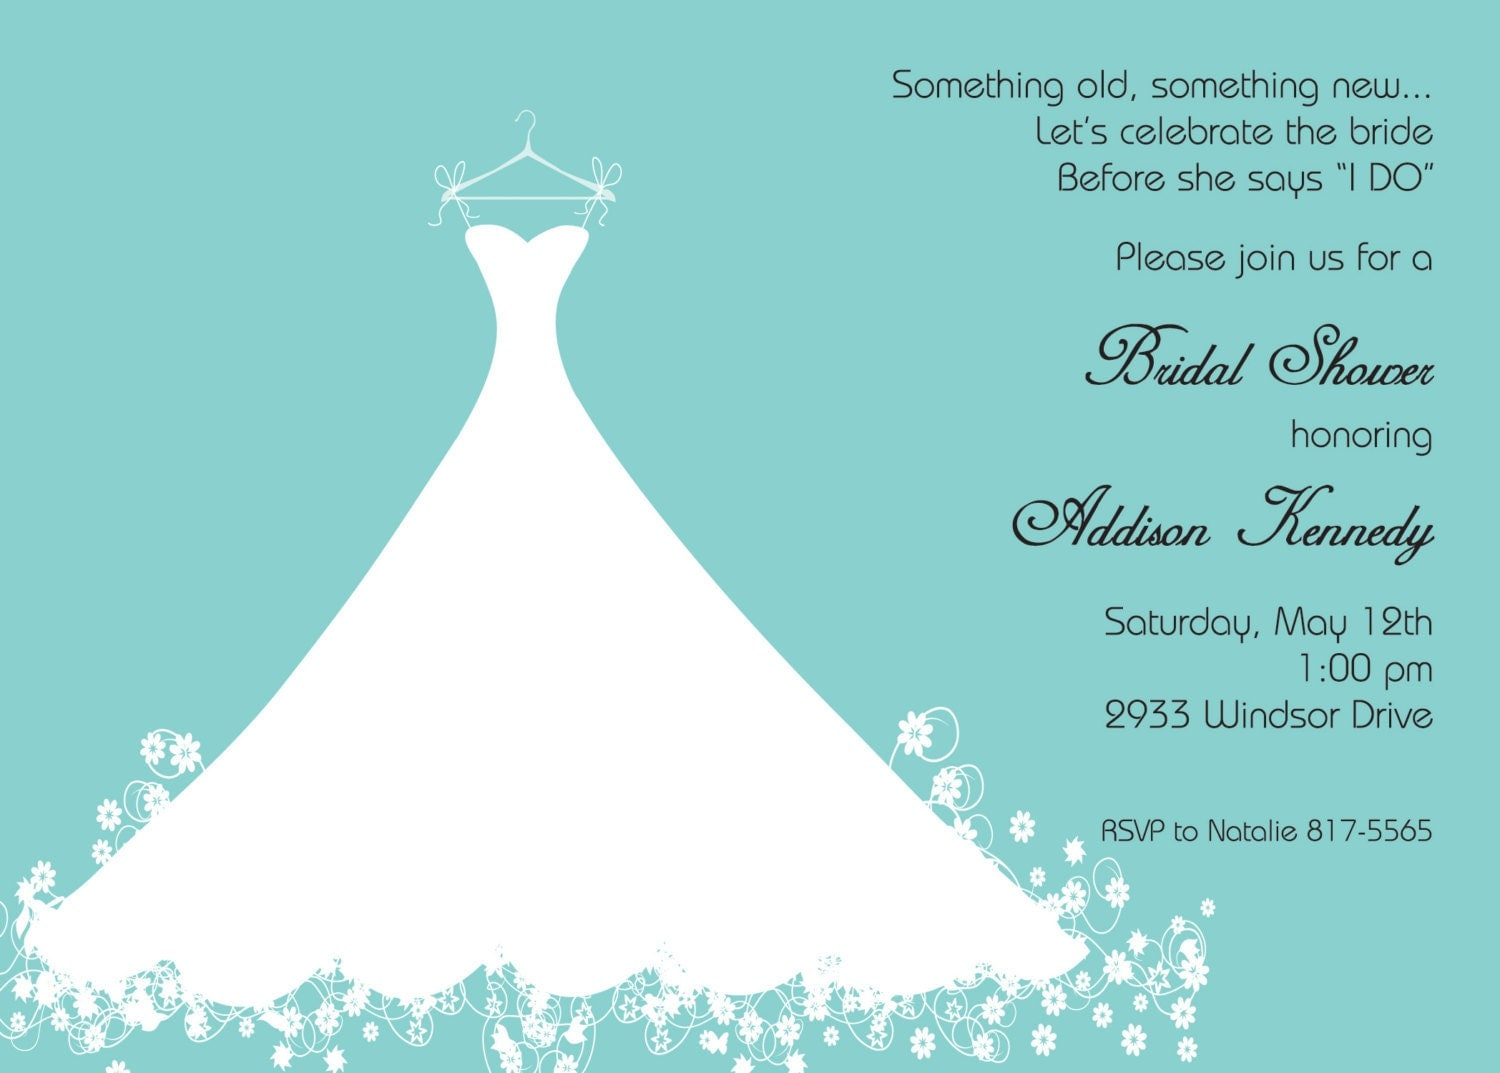 wedding shower invitation template bridal shower invitation aqua blue wedding gown printed 1153